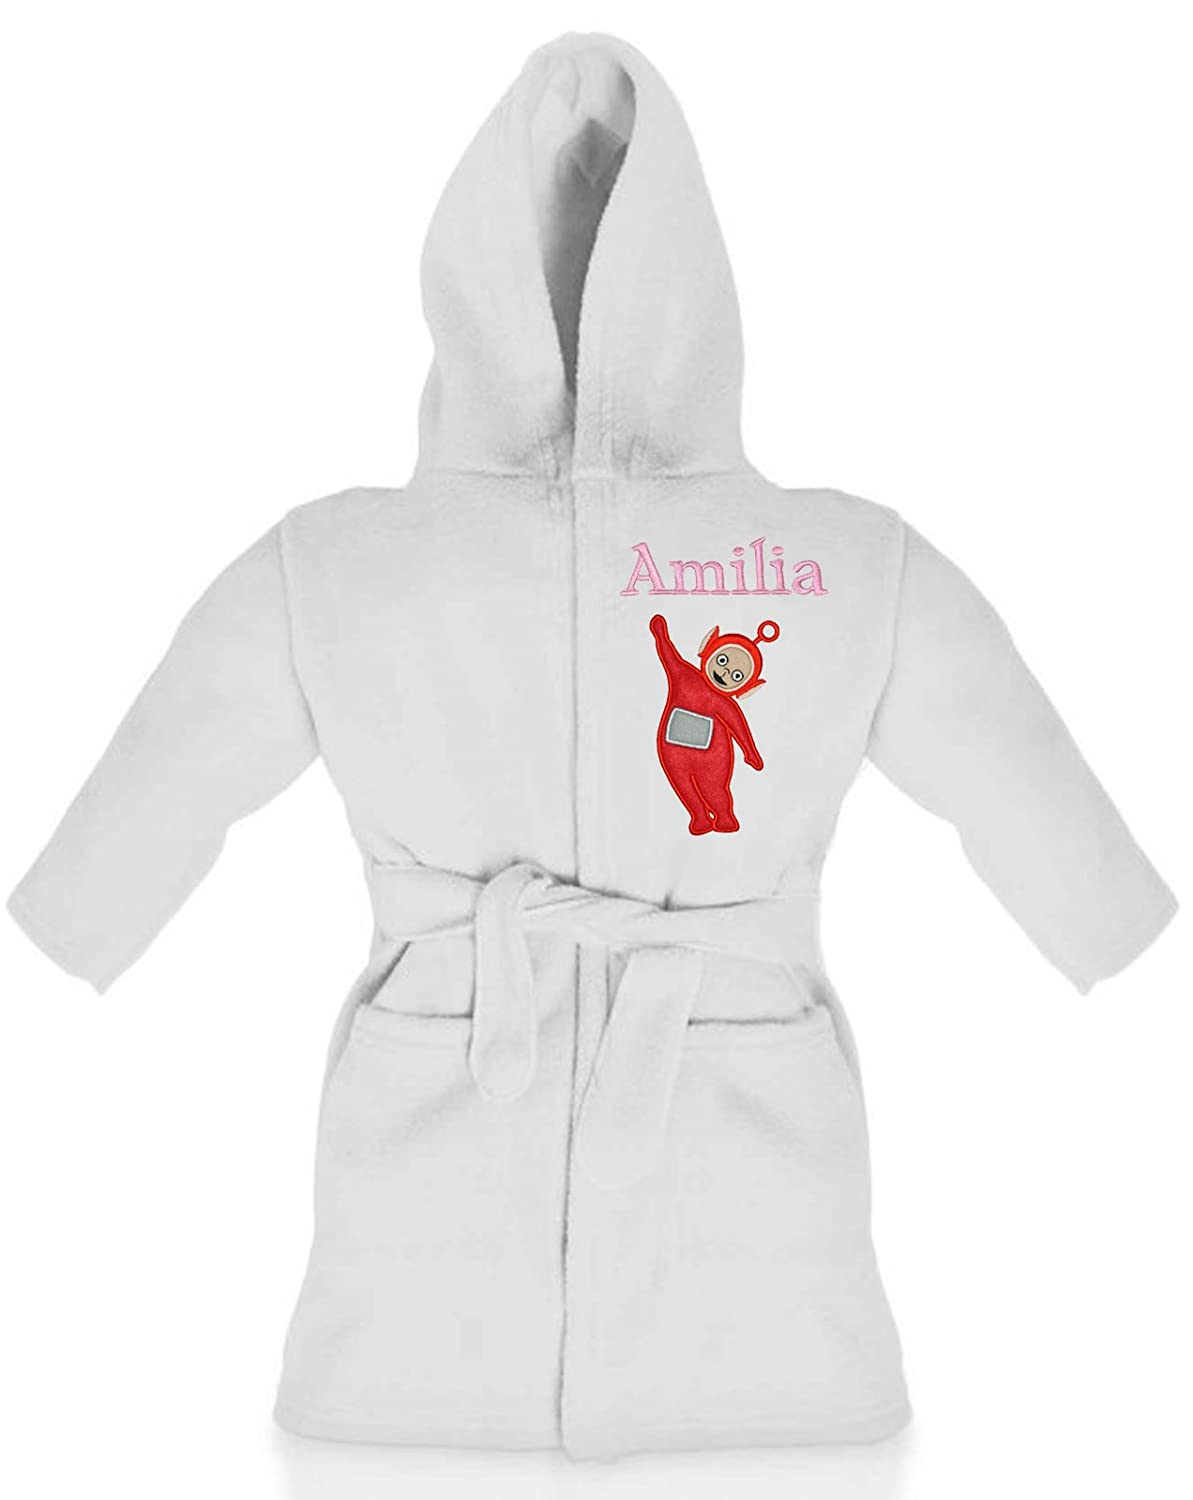 Oh Sew Simple Po (Teletubbies) Girls Personalised Fleece Dressing Gown/Bathrobe (White) Teletubbies - Dipsy